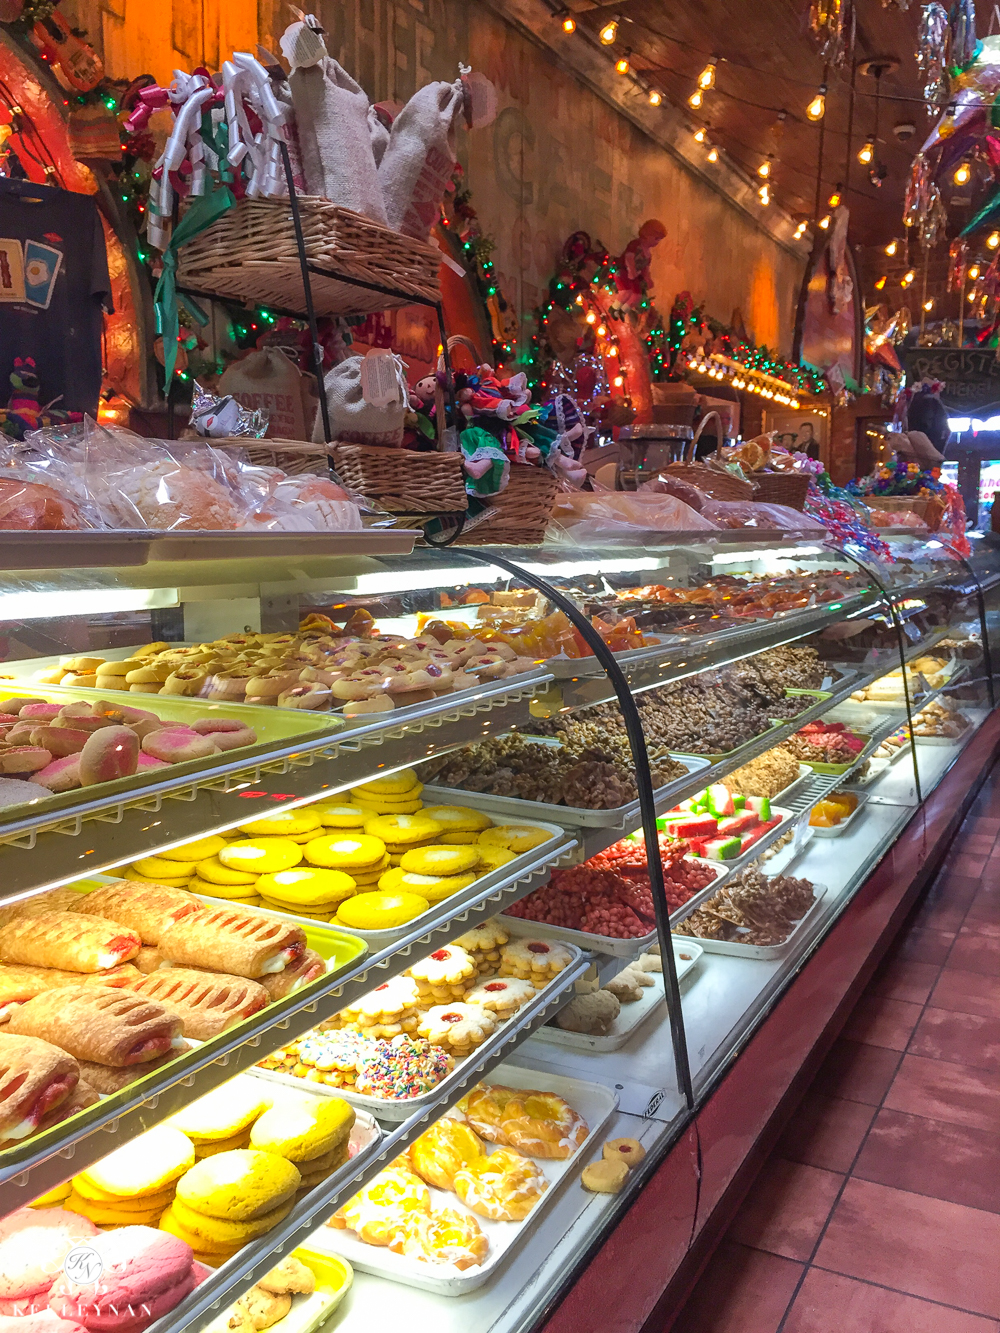 Texas Trip and San Antonio Fiesta Week-Mi tierra bakery